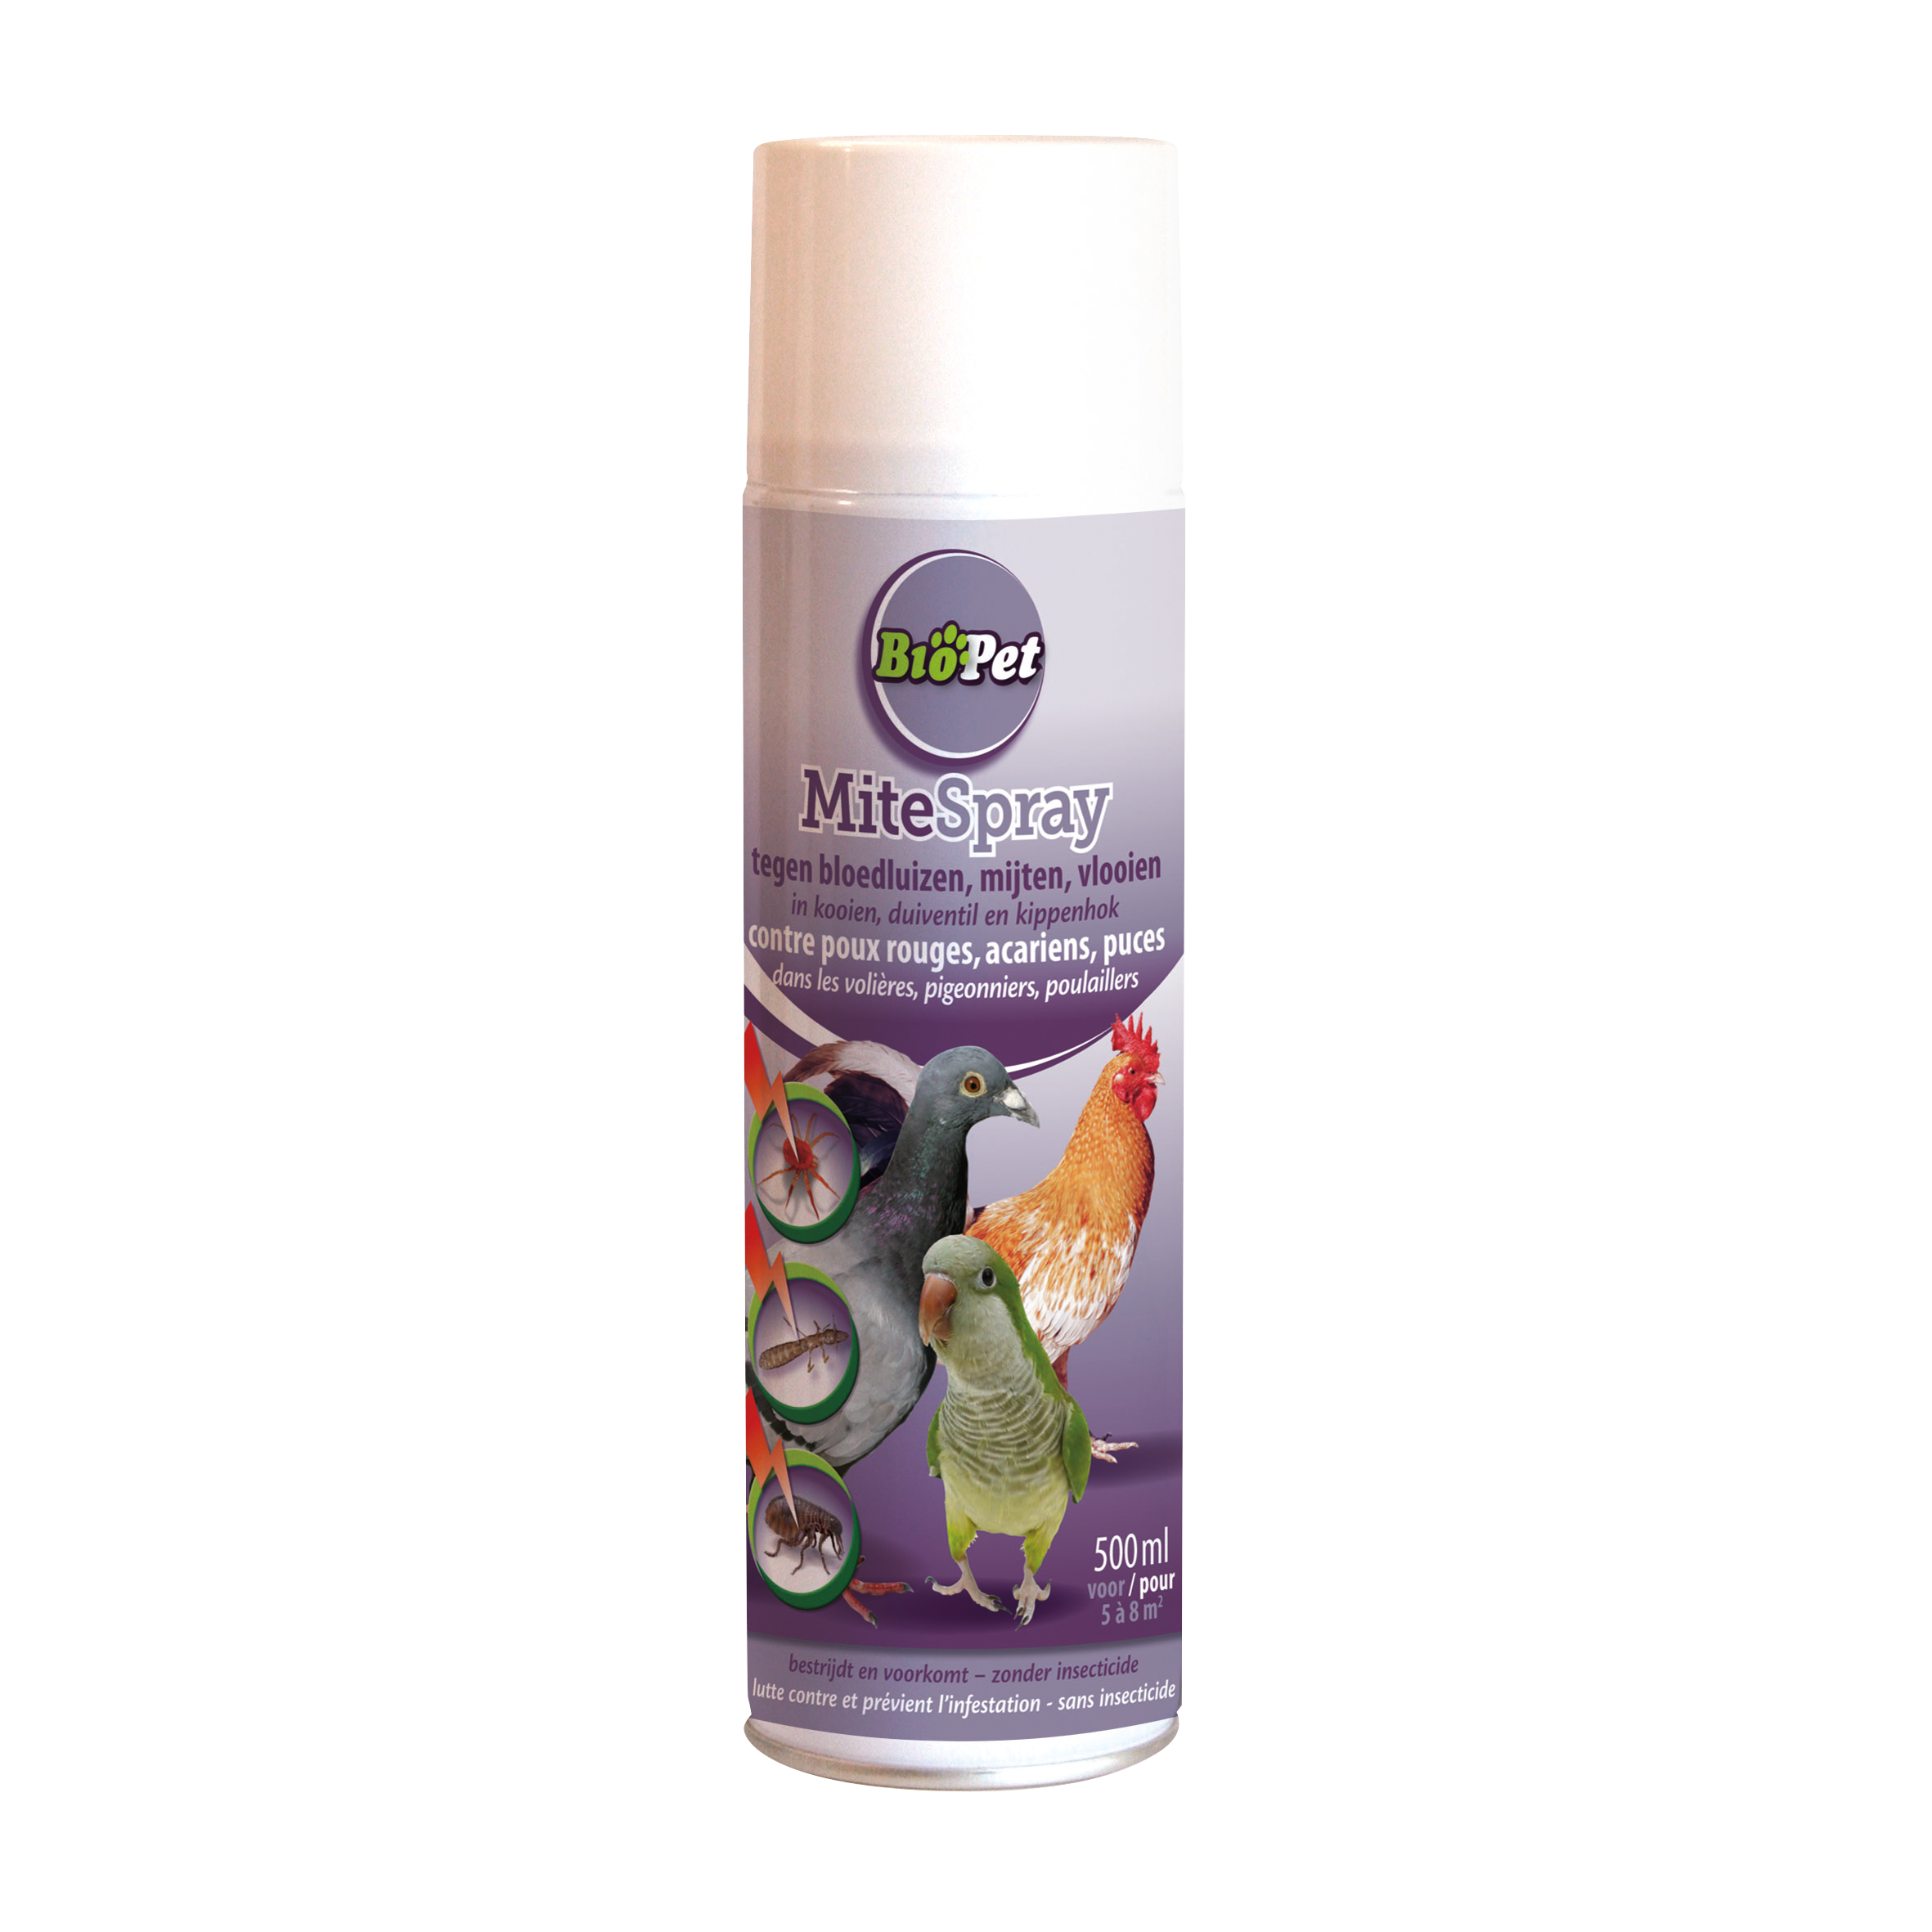 Biopet Mite-Spray 500ml image